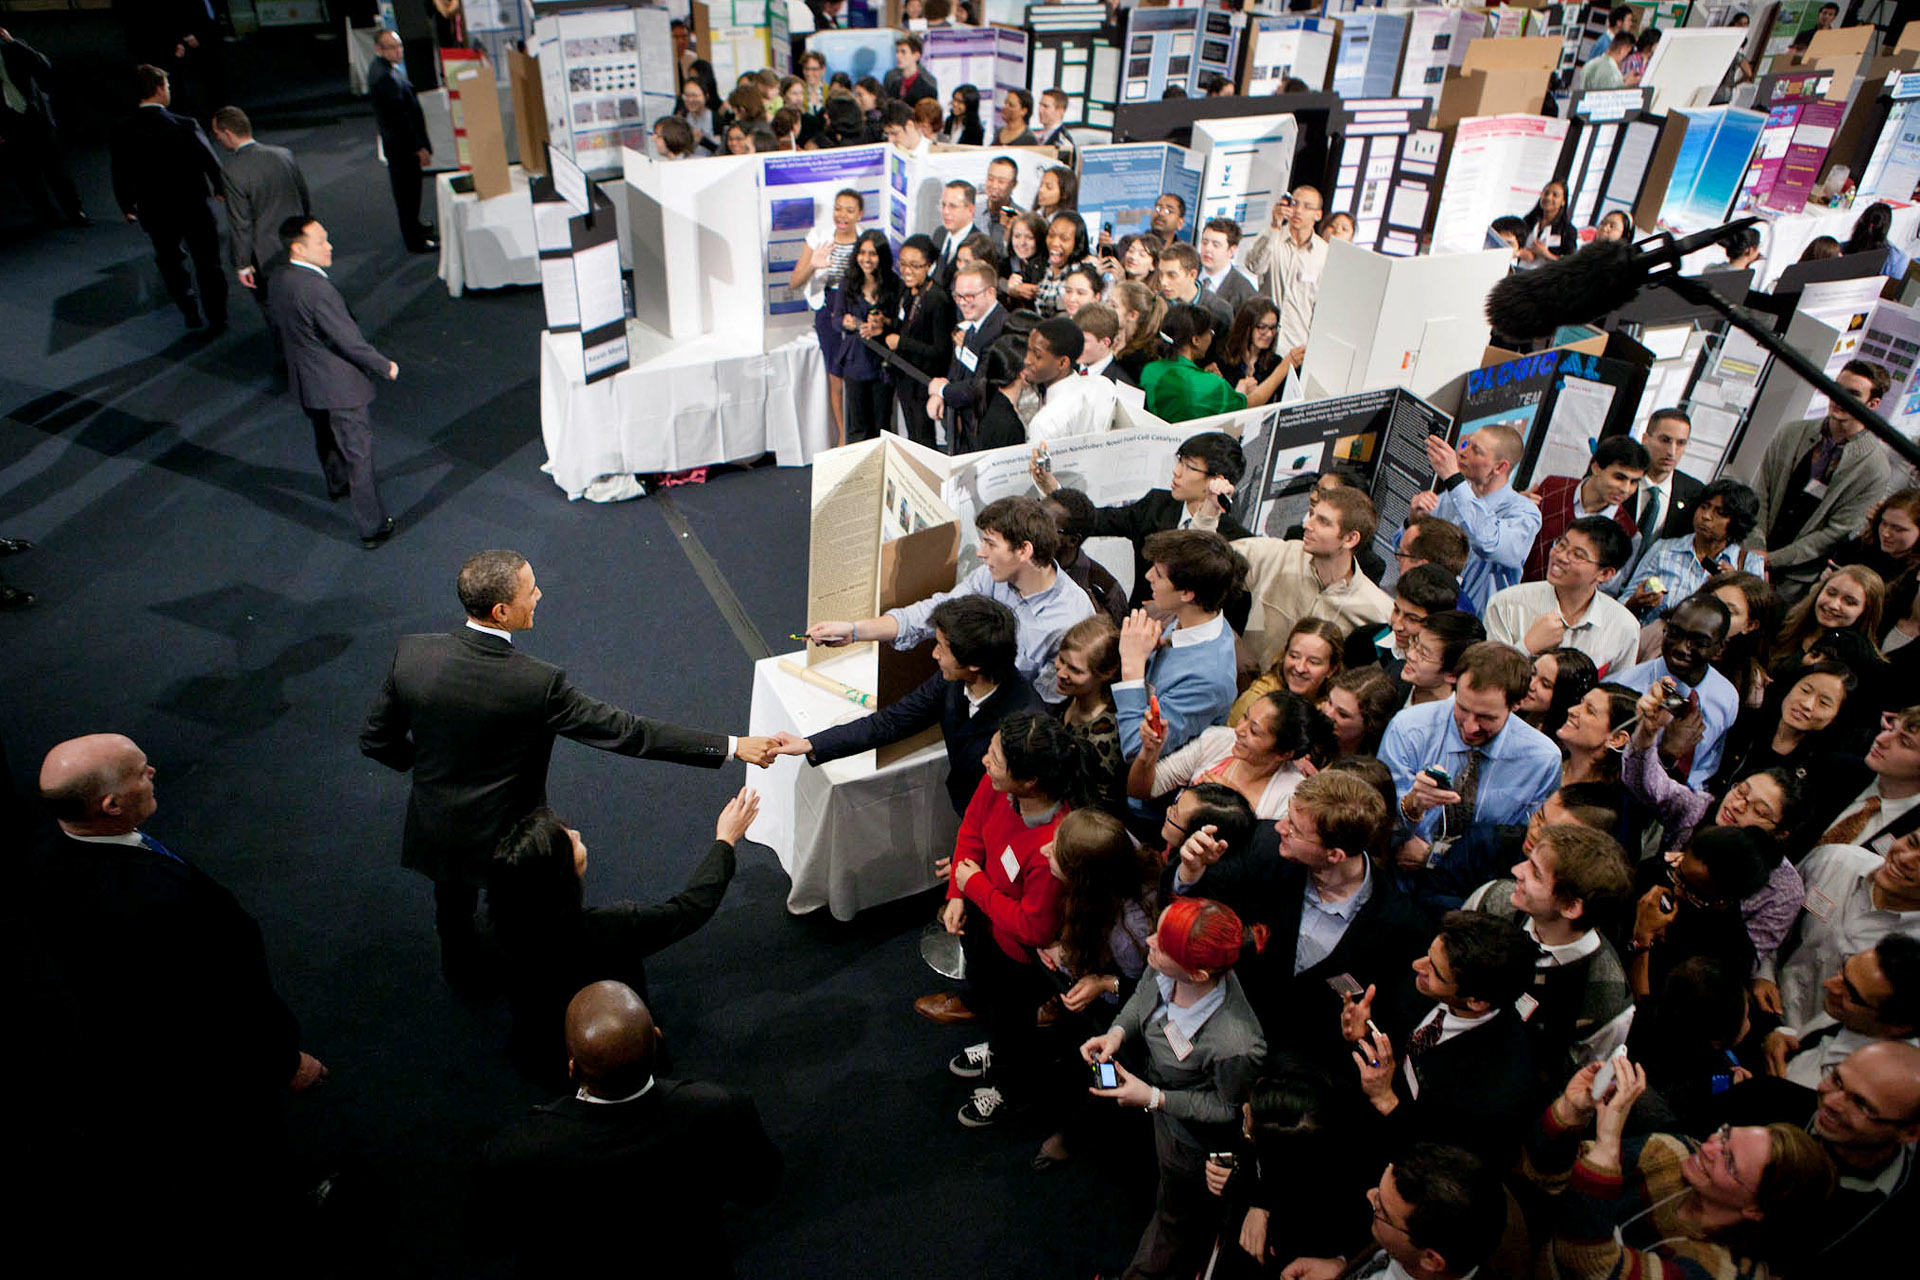 President Barack Obama drops by the New York City Science Fair